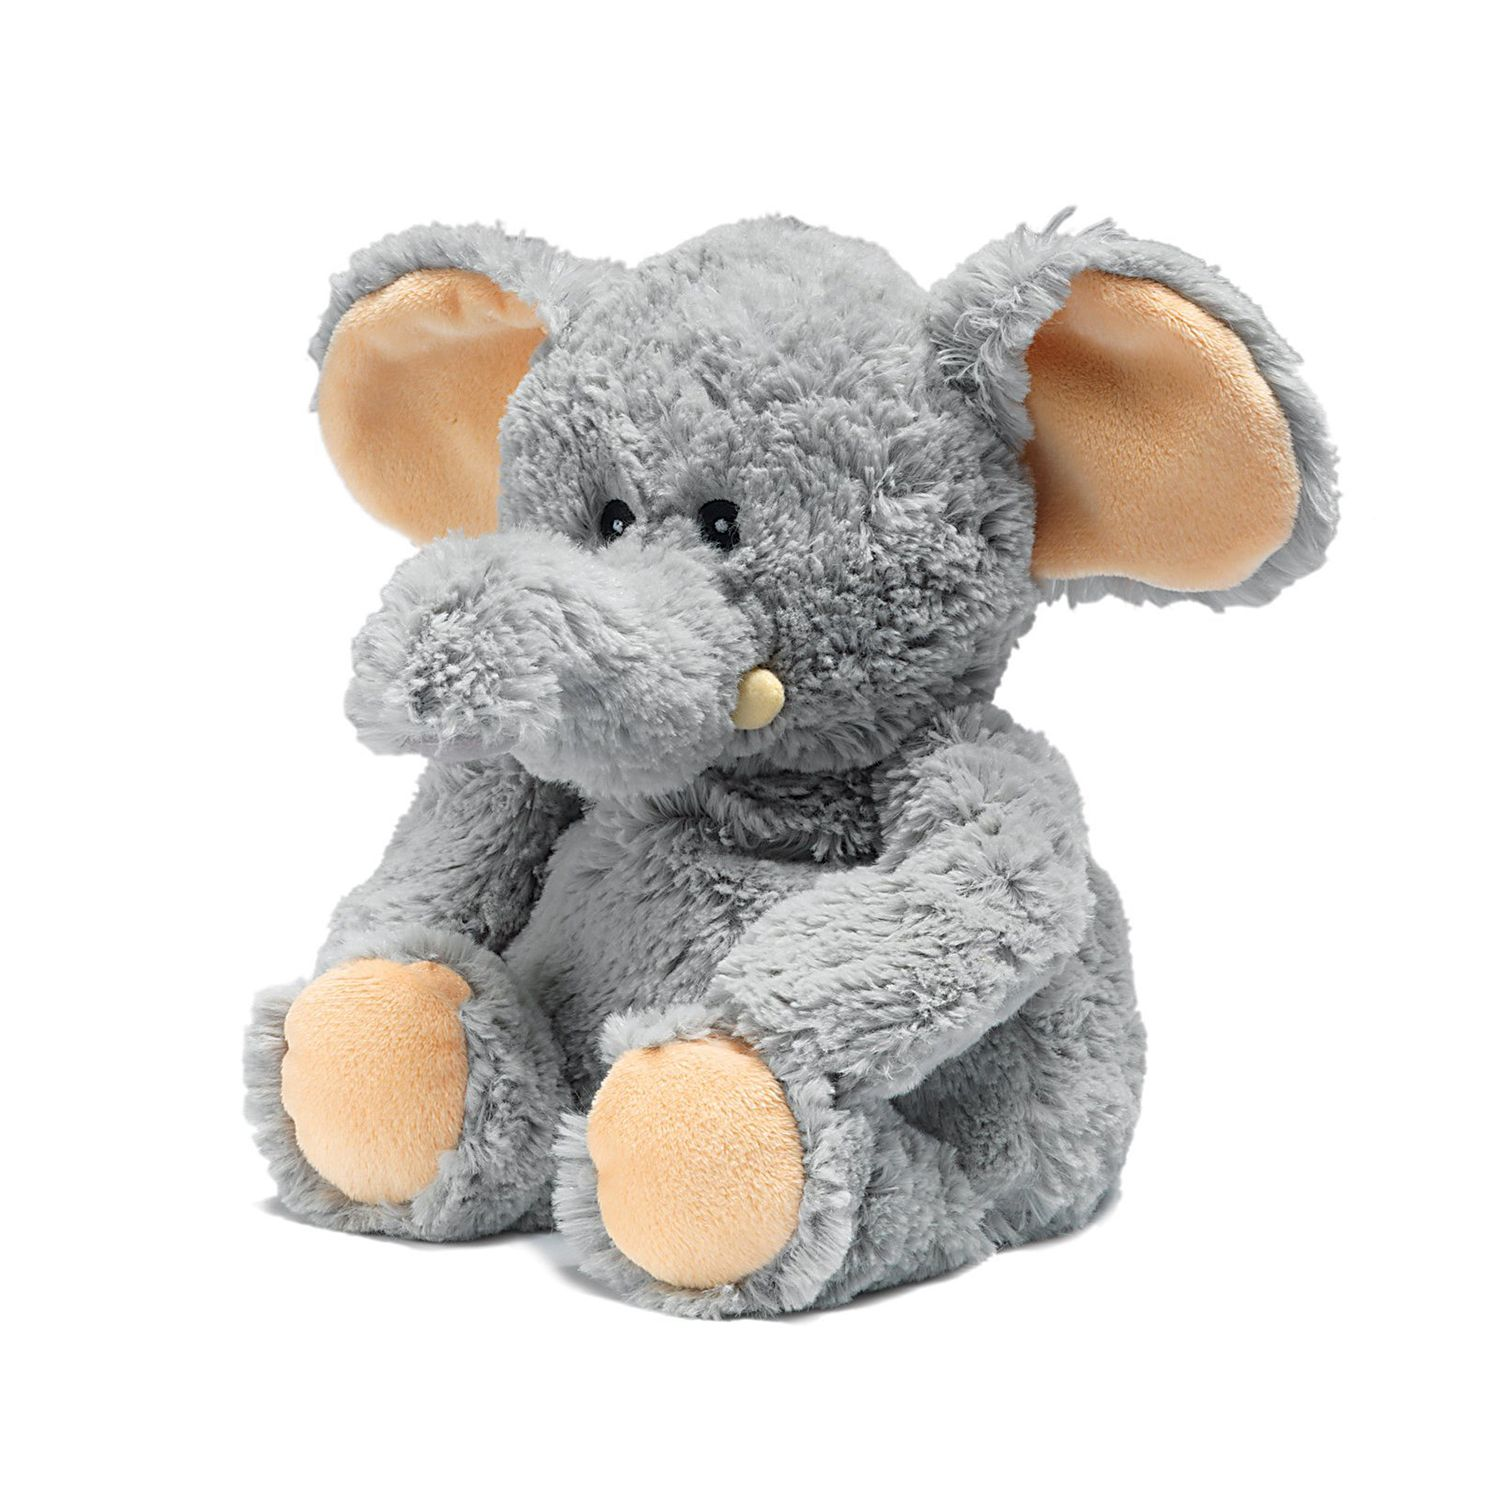 Warmies Plush Elephant Microwavable Soft Toy (With images